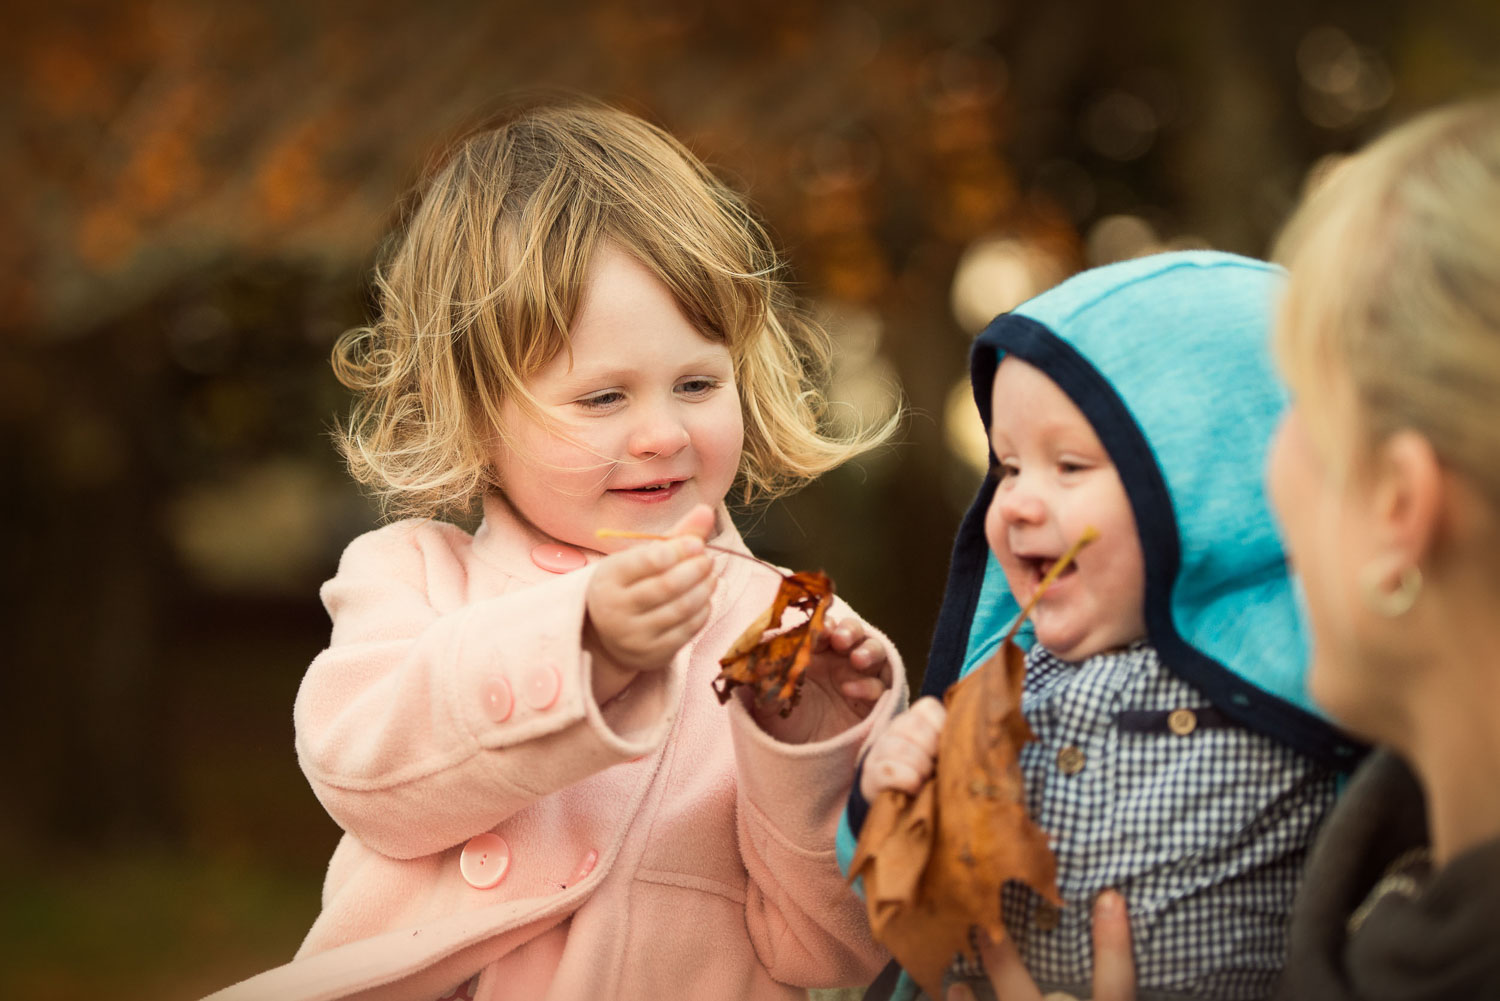 children playing together photography by siobhan kelly photography